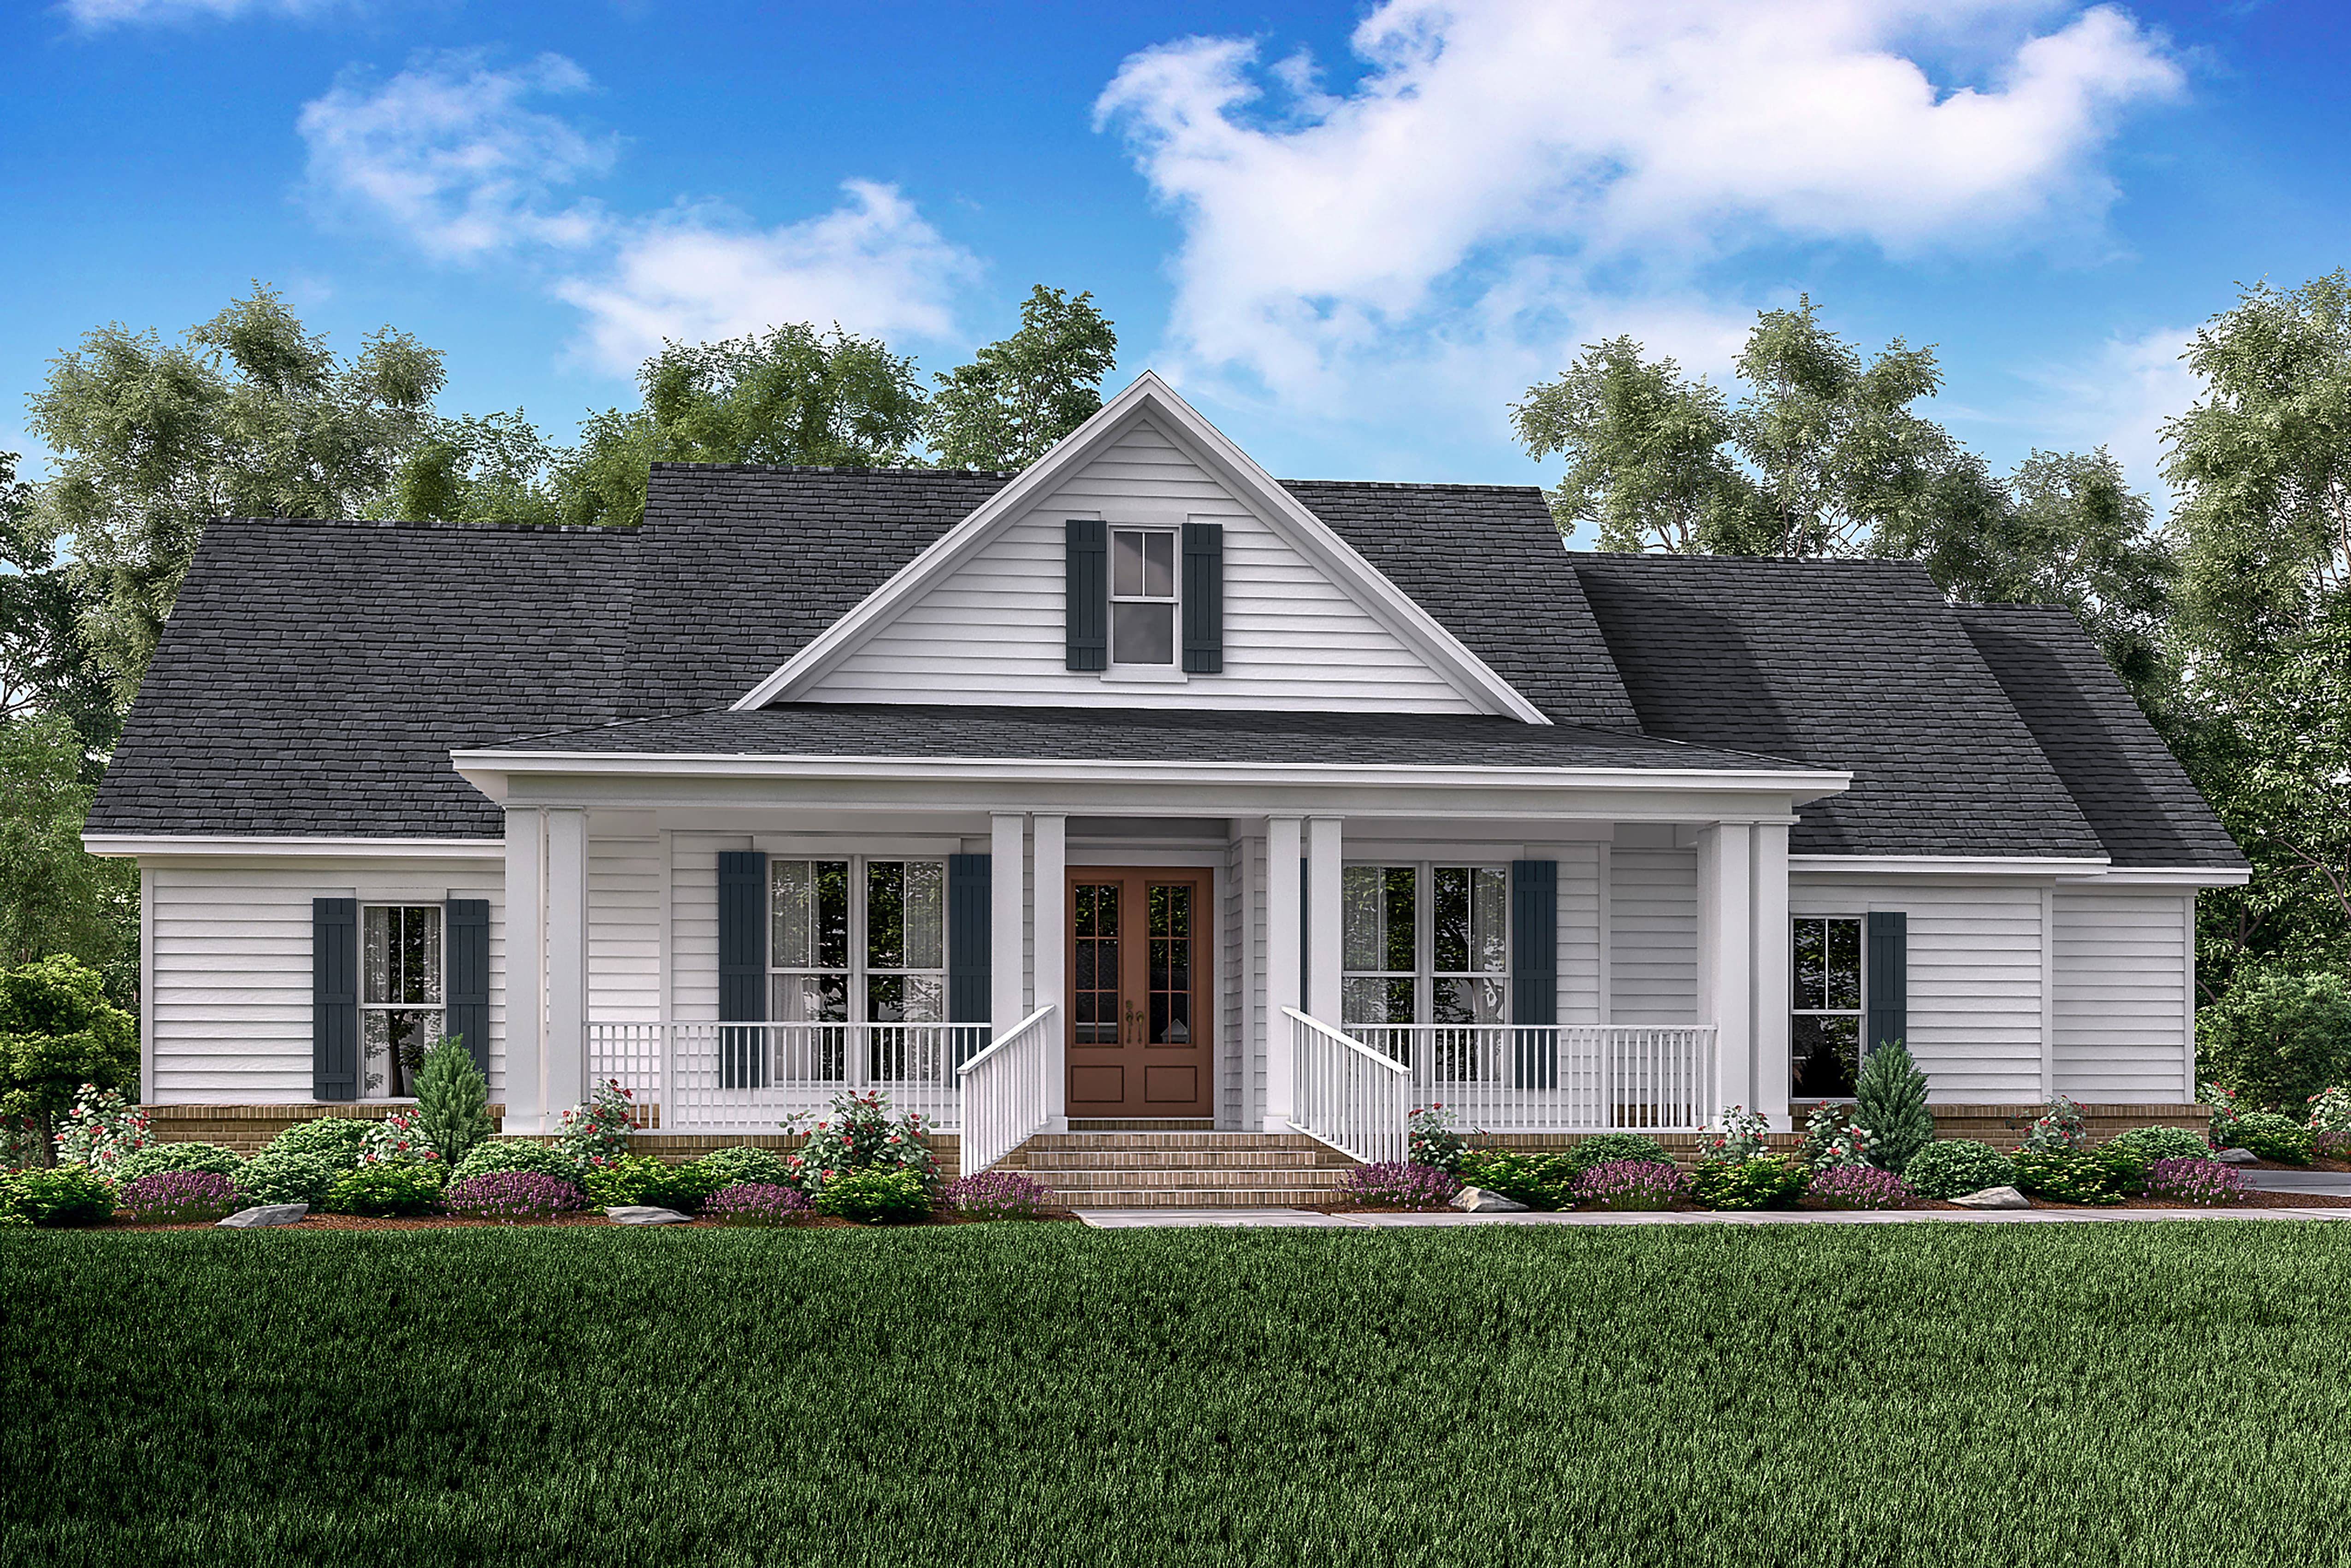 3 bedrm 1993 sq ft farmhouse house plan 142 1183 for 1 level farmhouse plans